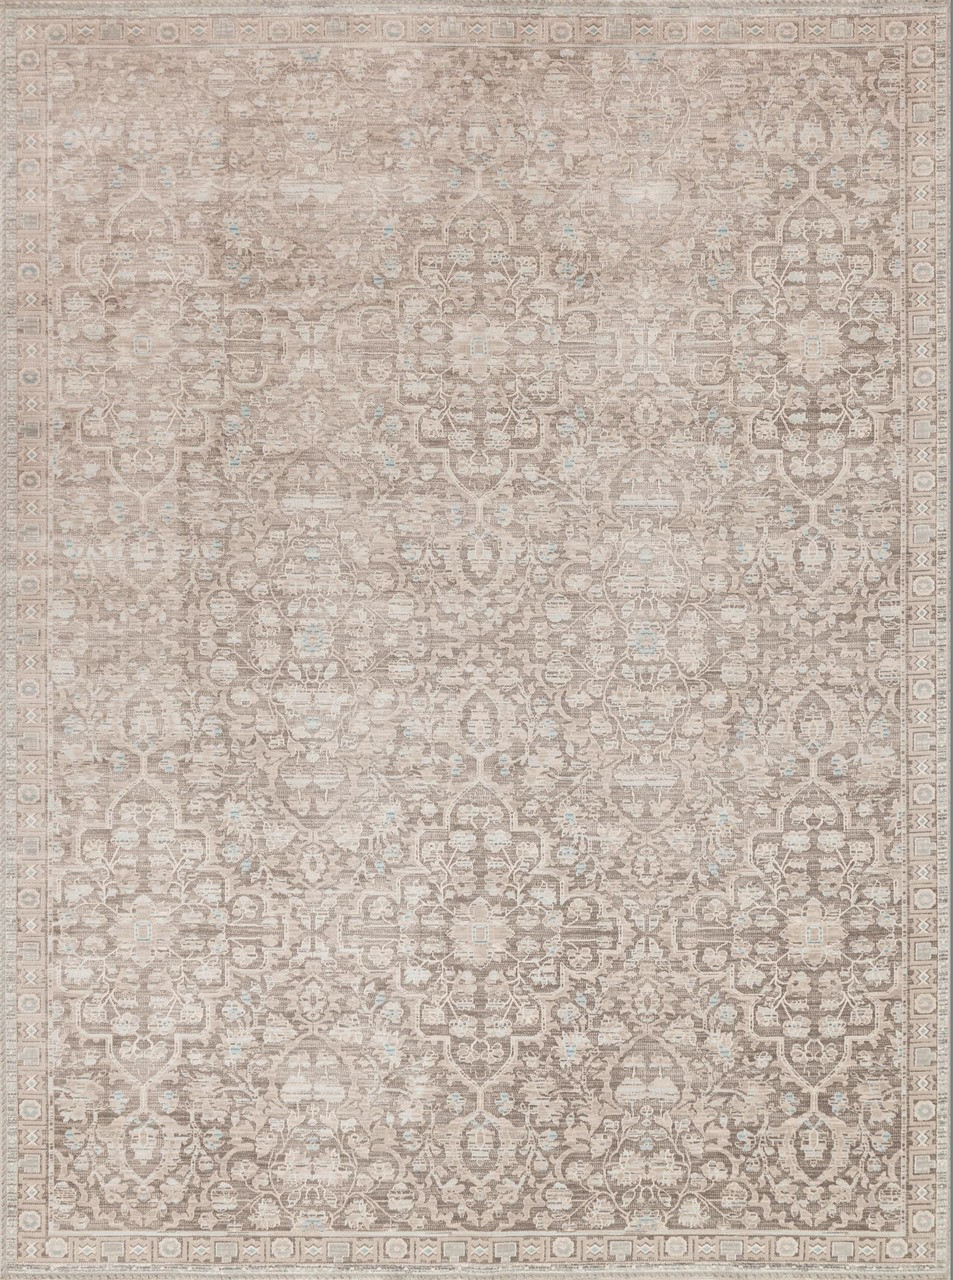 1d8b5287b Magnolia Home Ella Rose EJ-02 PEWTER by Joanna Gaines.  Free-Shipping-Rug-Fashion-Store